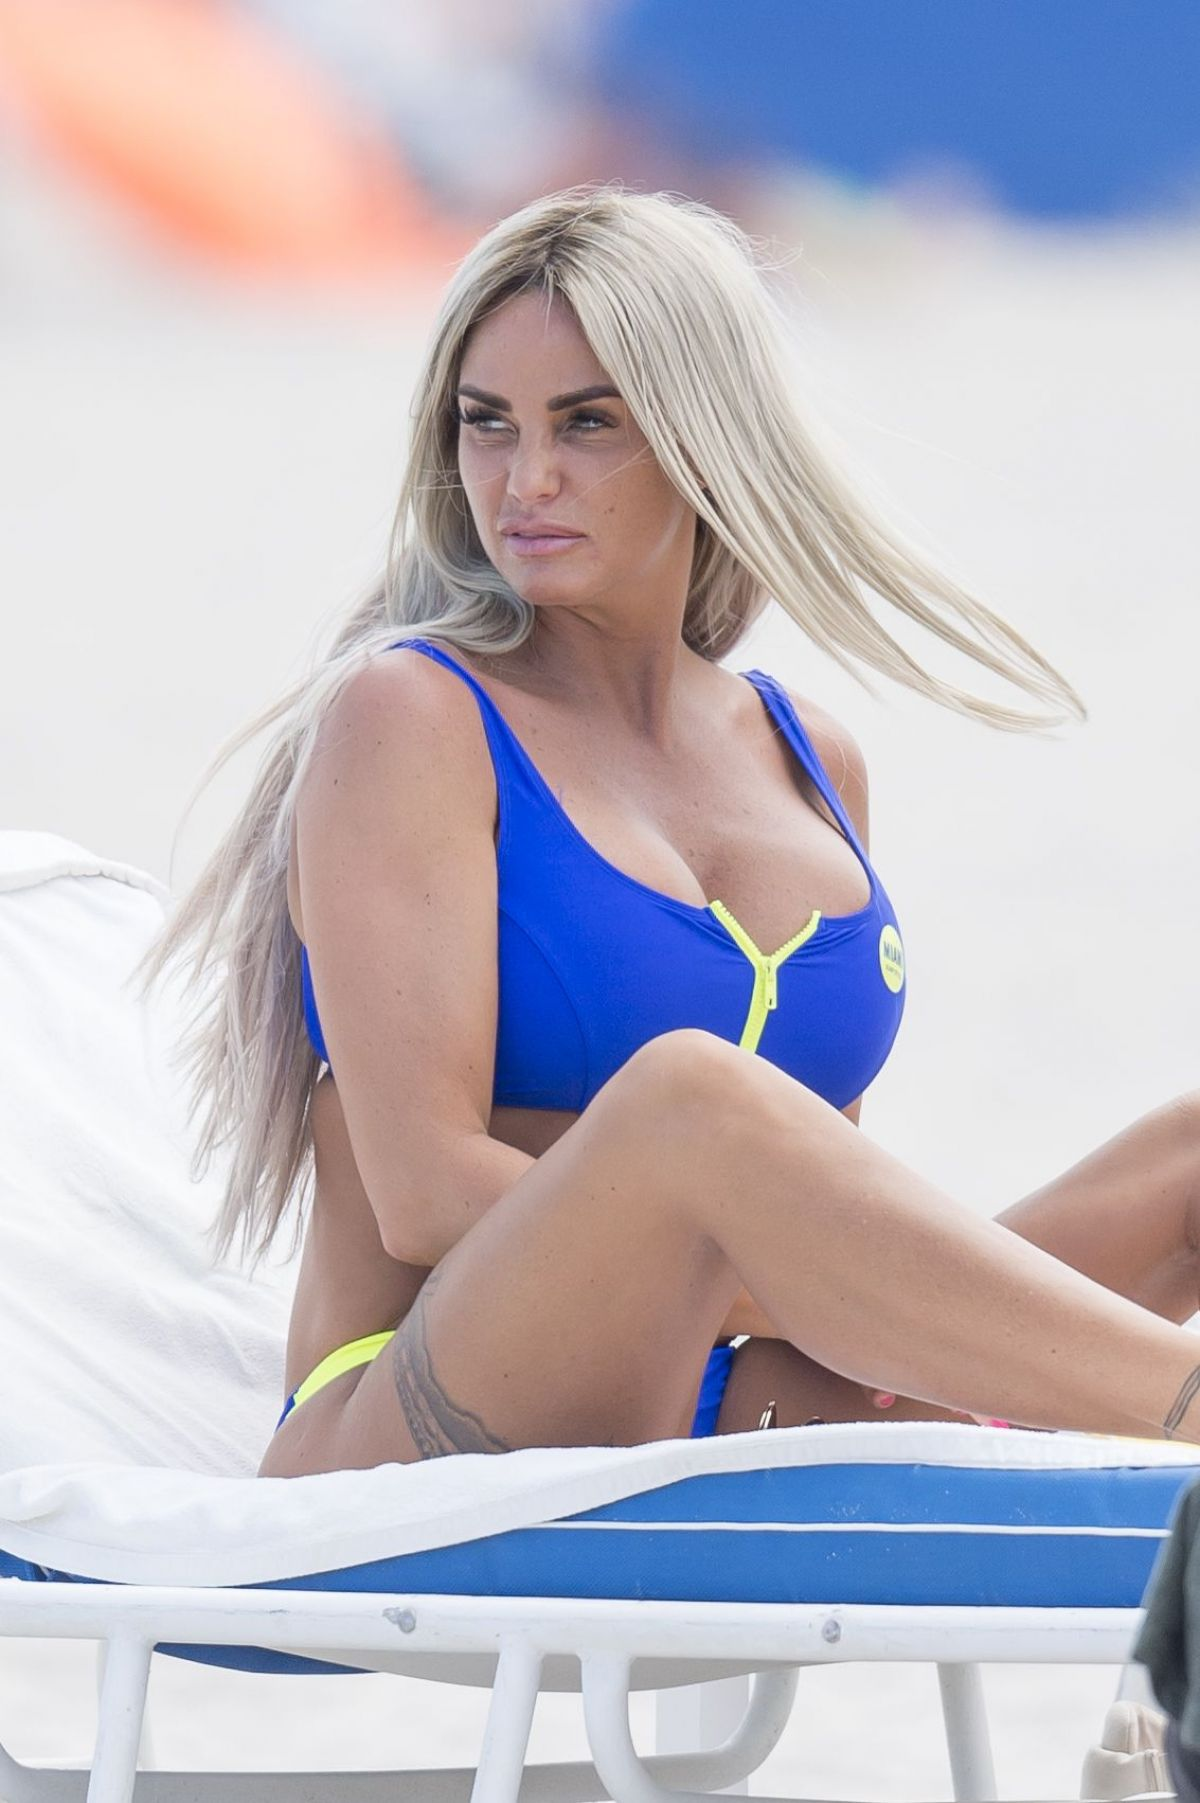 katie price - photo #2